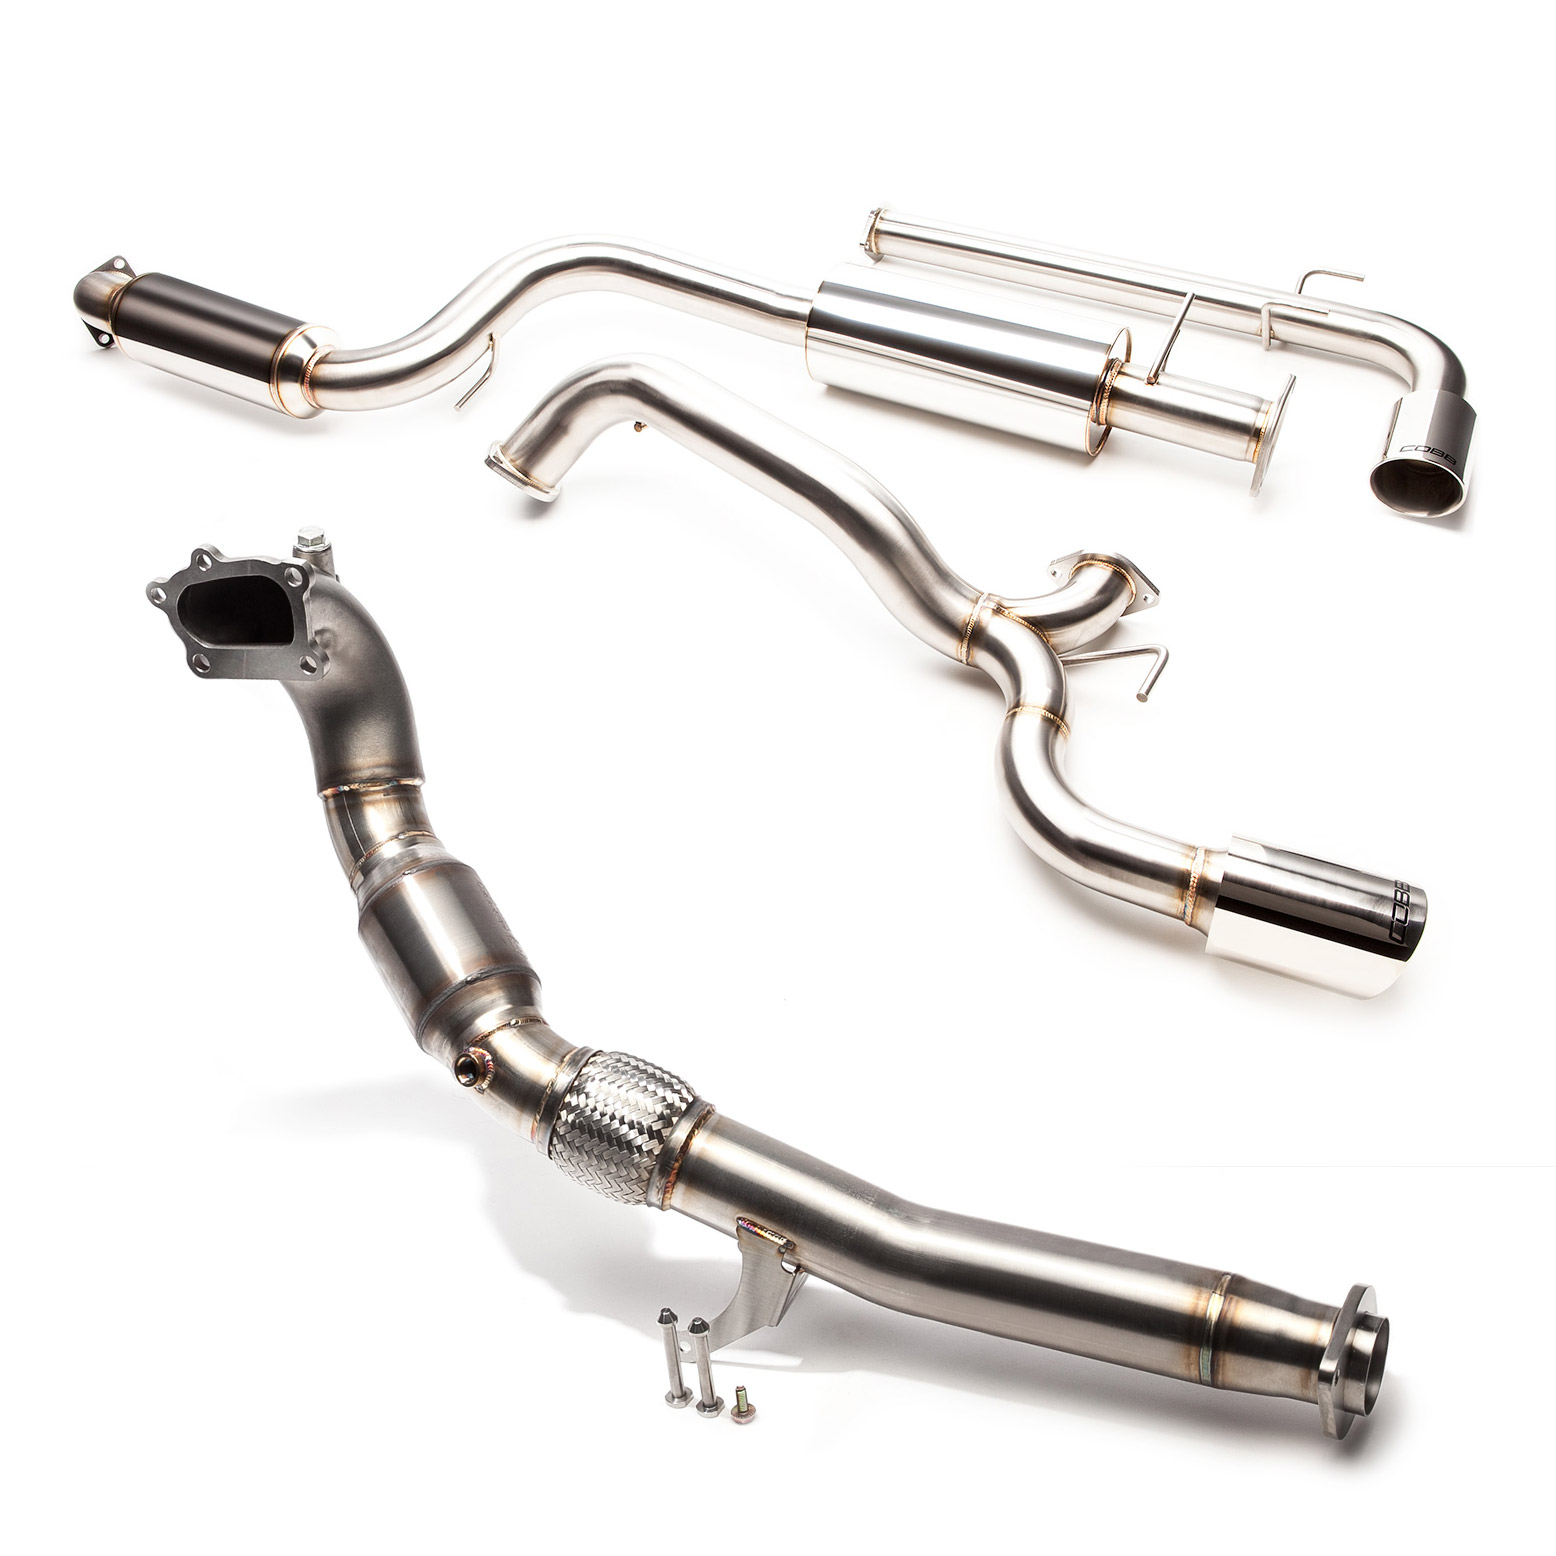 cobb 3 inch turbo back exhaust system with cat 2013 2015 ford focus st